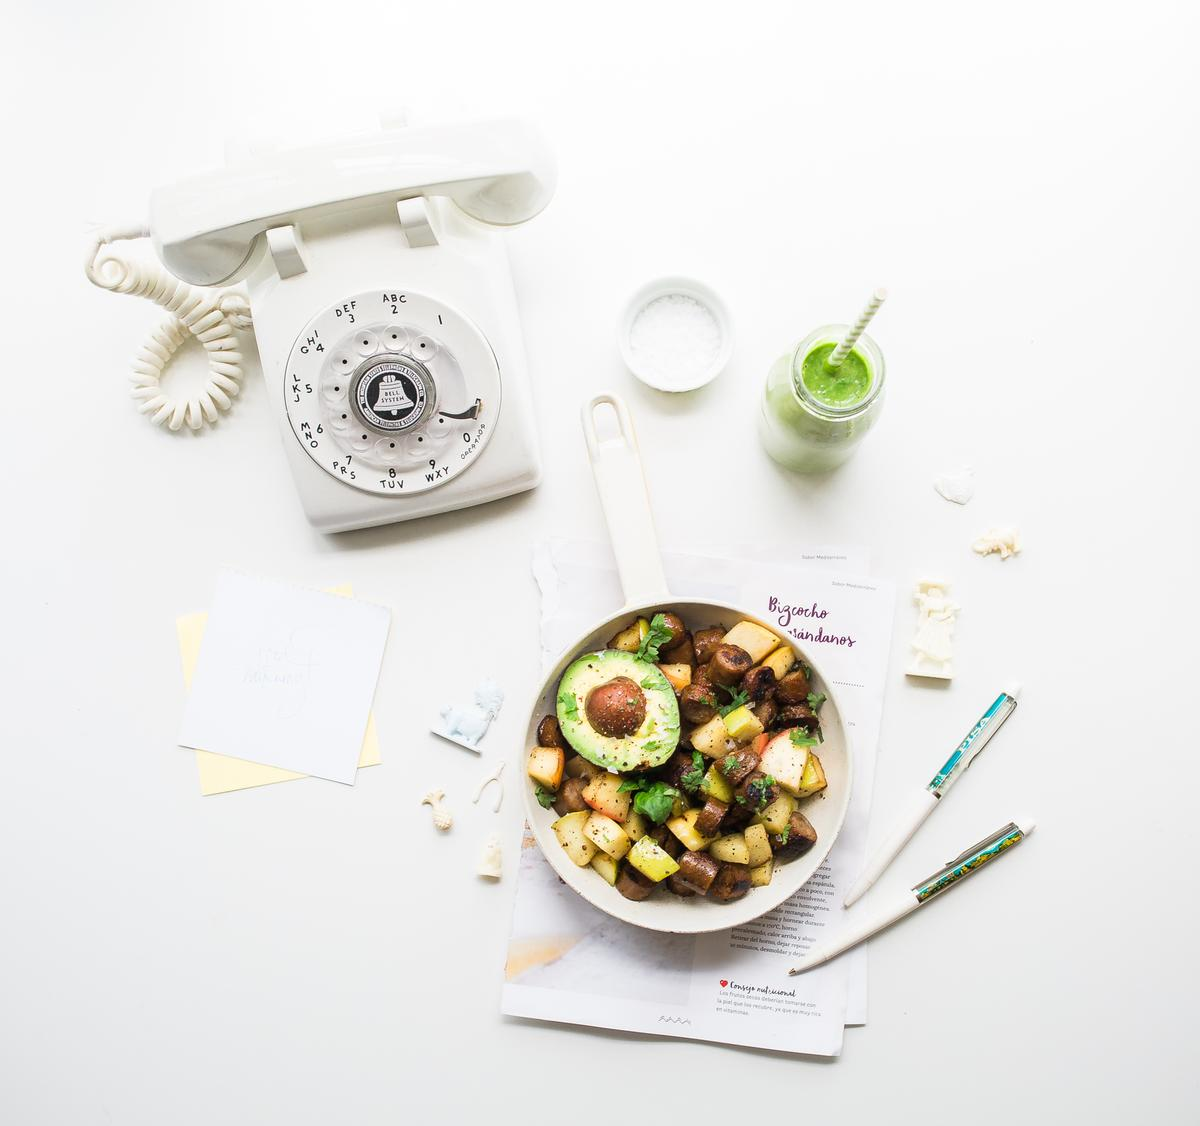 sliced avocado fruit inside bowl near rotary phone beside jar